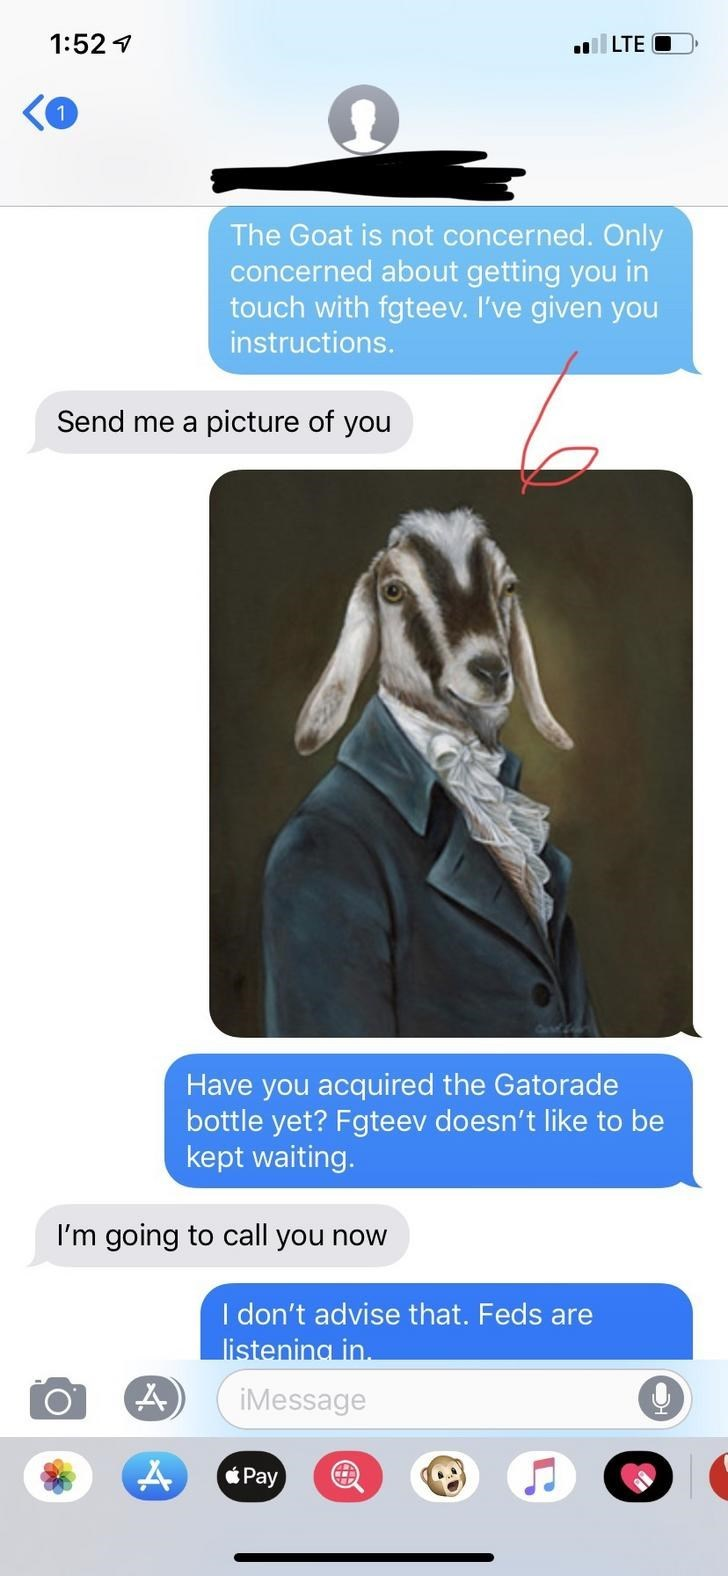 Text - 1:52 1 LTE O The Goat is not concerned. Only concerned about getting you in touch with fgteev. I've given you instructions. Send me a picture of you Have you acquired the Gatorade bottle yet? Fgteev doesn't like to be kept waiting. I'm going to call you now I don't advise that. Feds are listening in. iMessage Pay